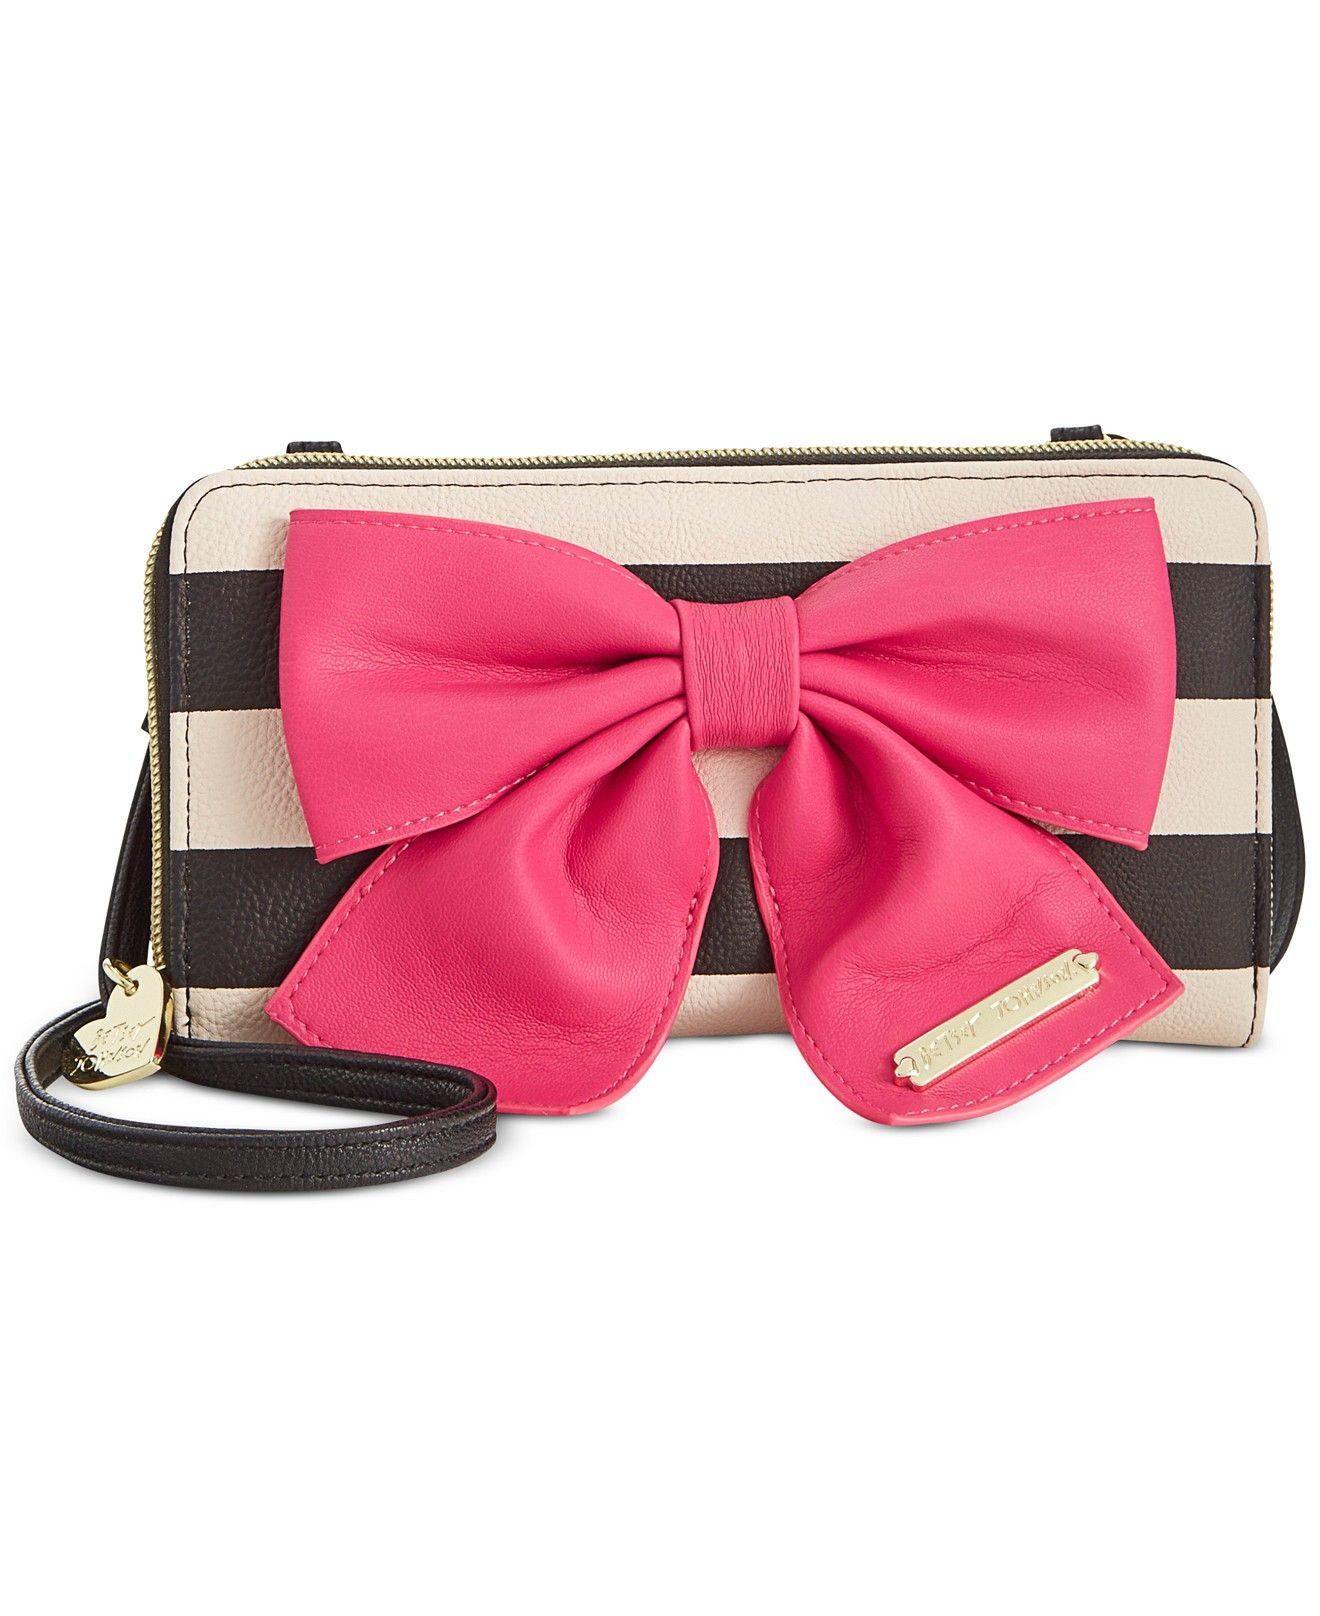 84099aebe9d8 Betsey Johnson Bow Zip Wallet Crossbody - Wallets   Wristlets - Handbags    Accessories - Macy s